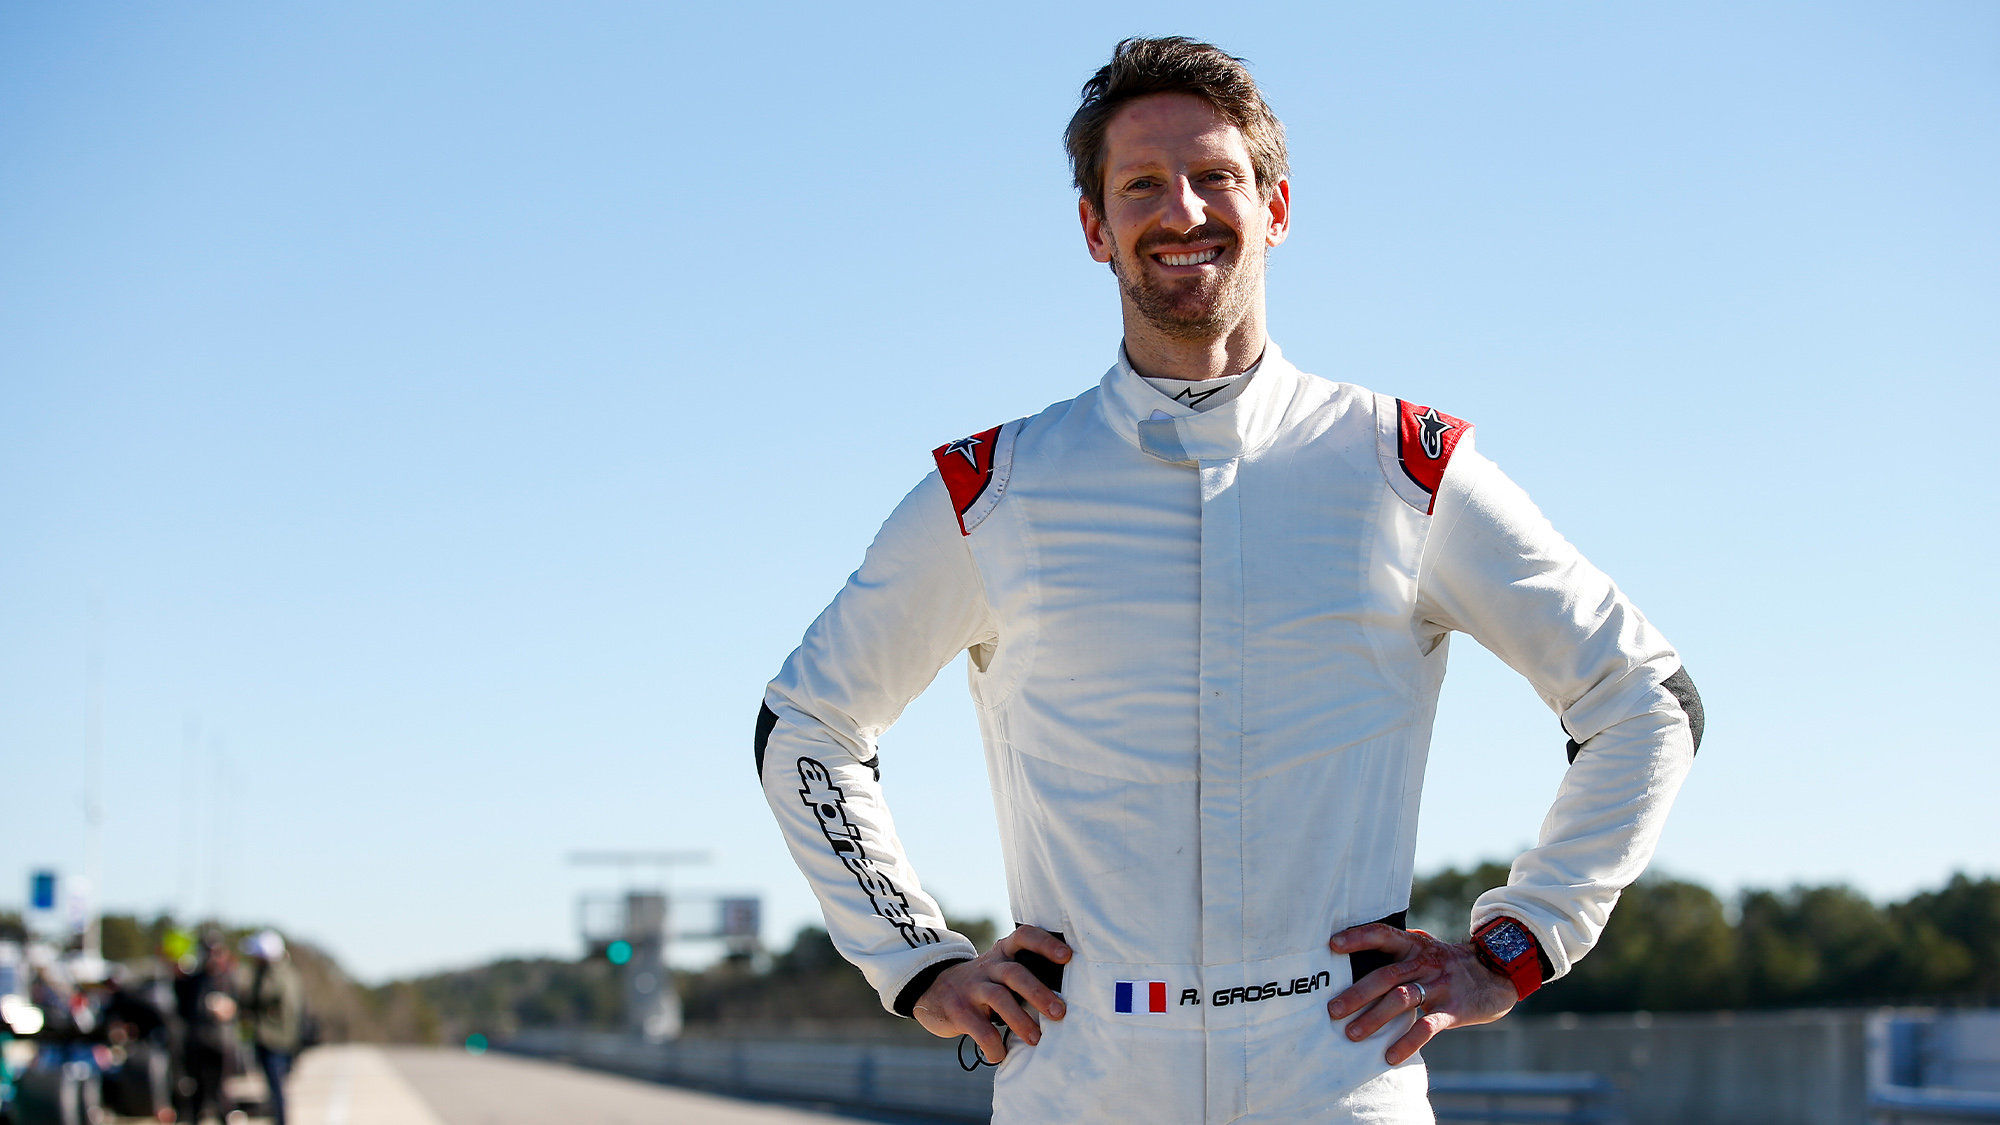 Getting back into a racing car 'felt like home', says Romain Grosjean